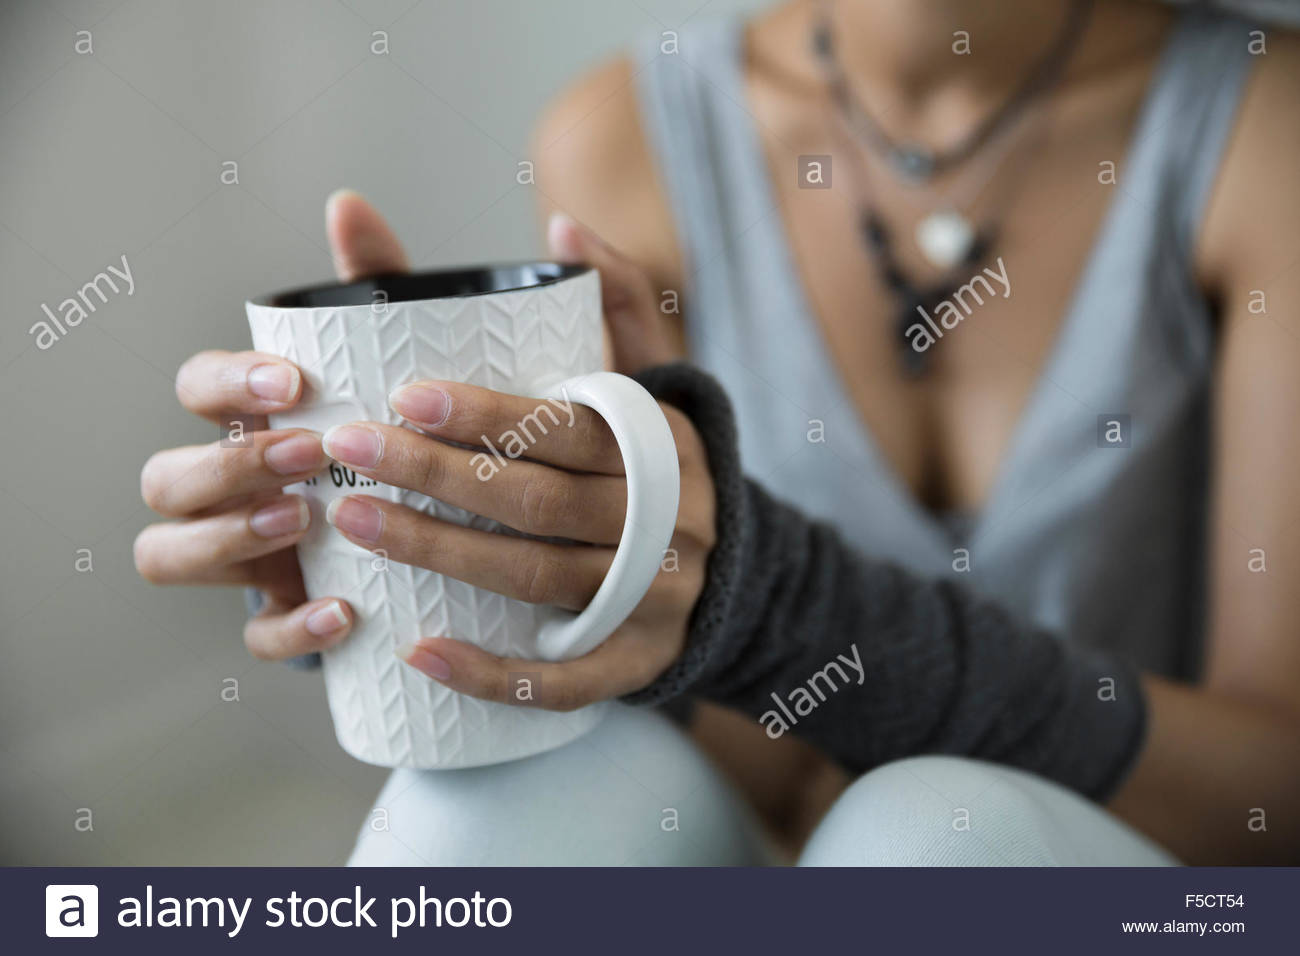 Close up young woman drinking coffee wrist warmers - Stock Image